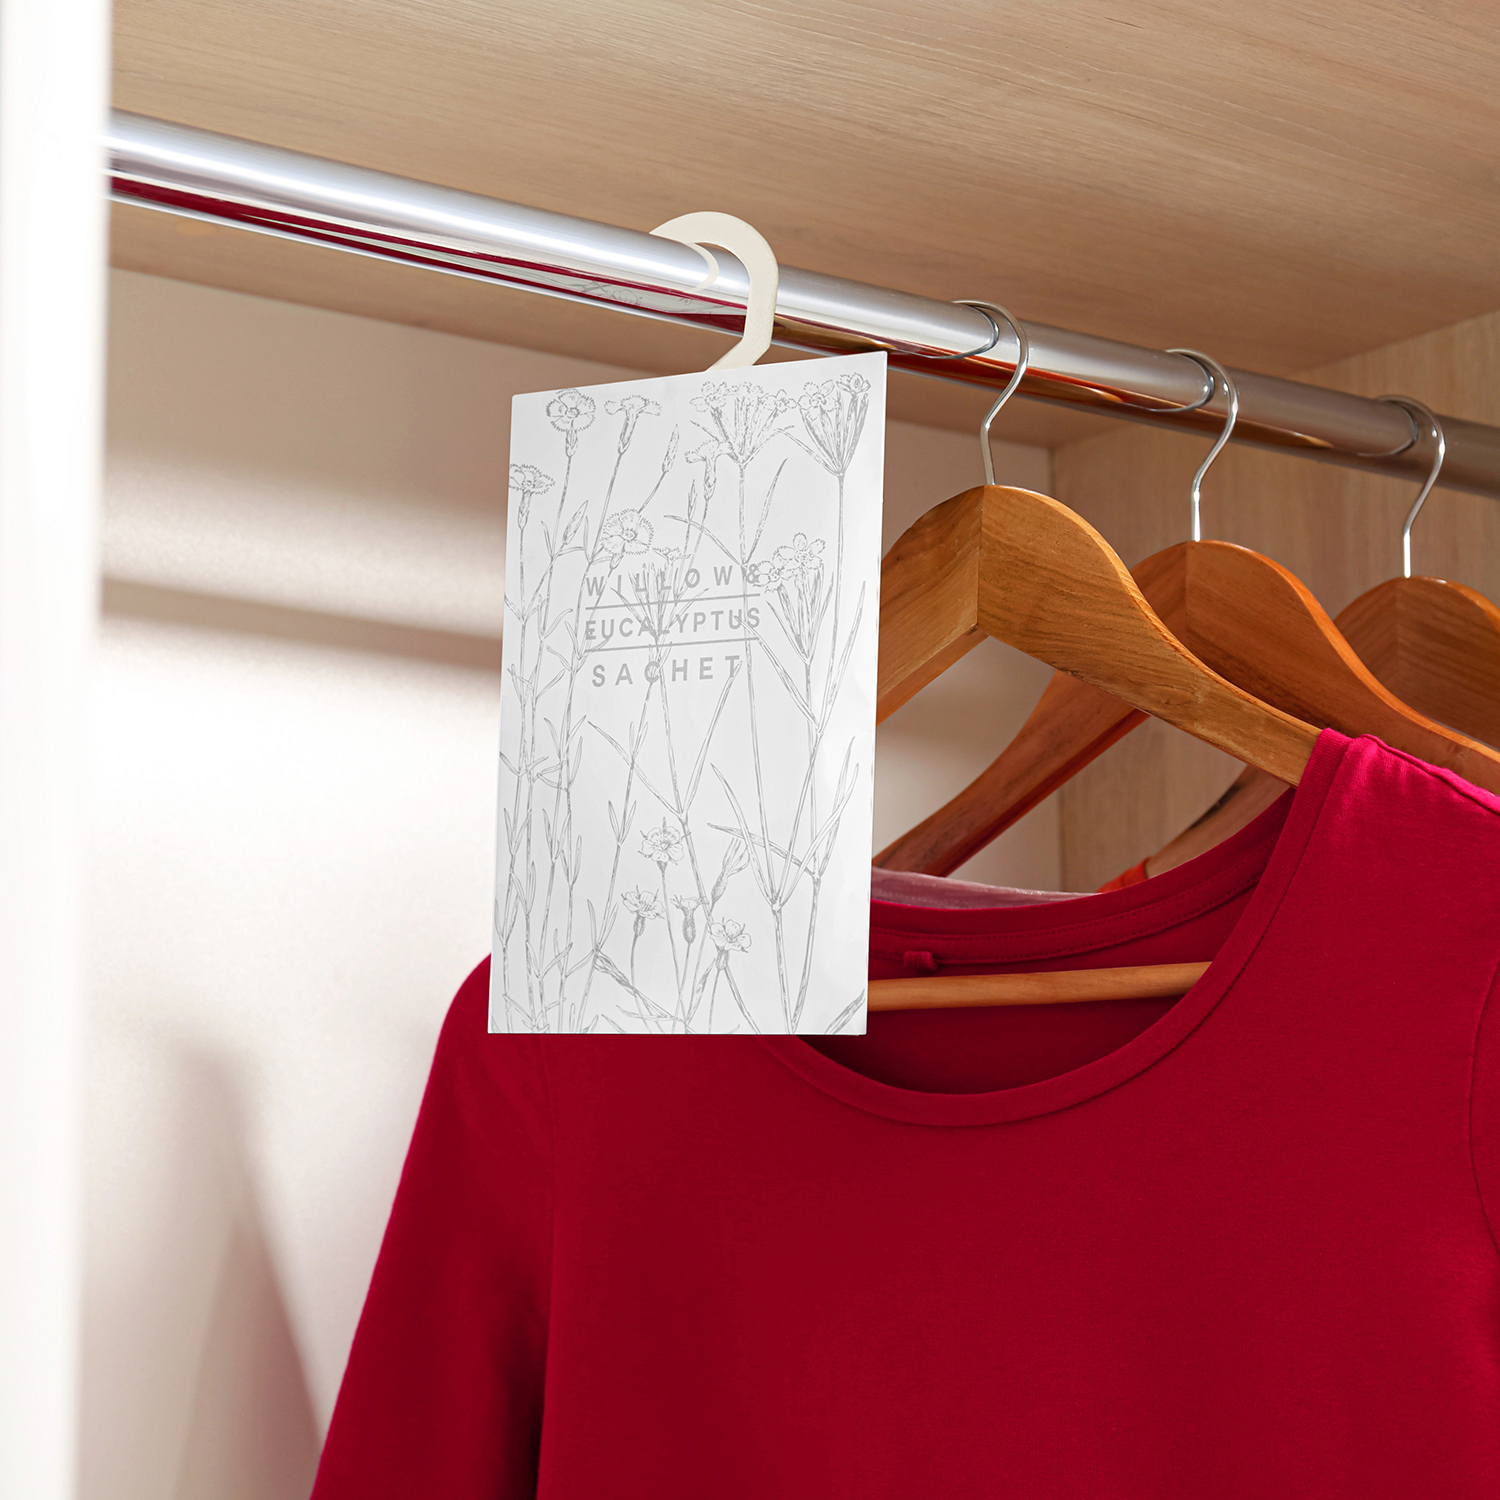 Willow & Eucalyptus Fragrance Sachet